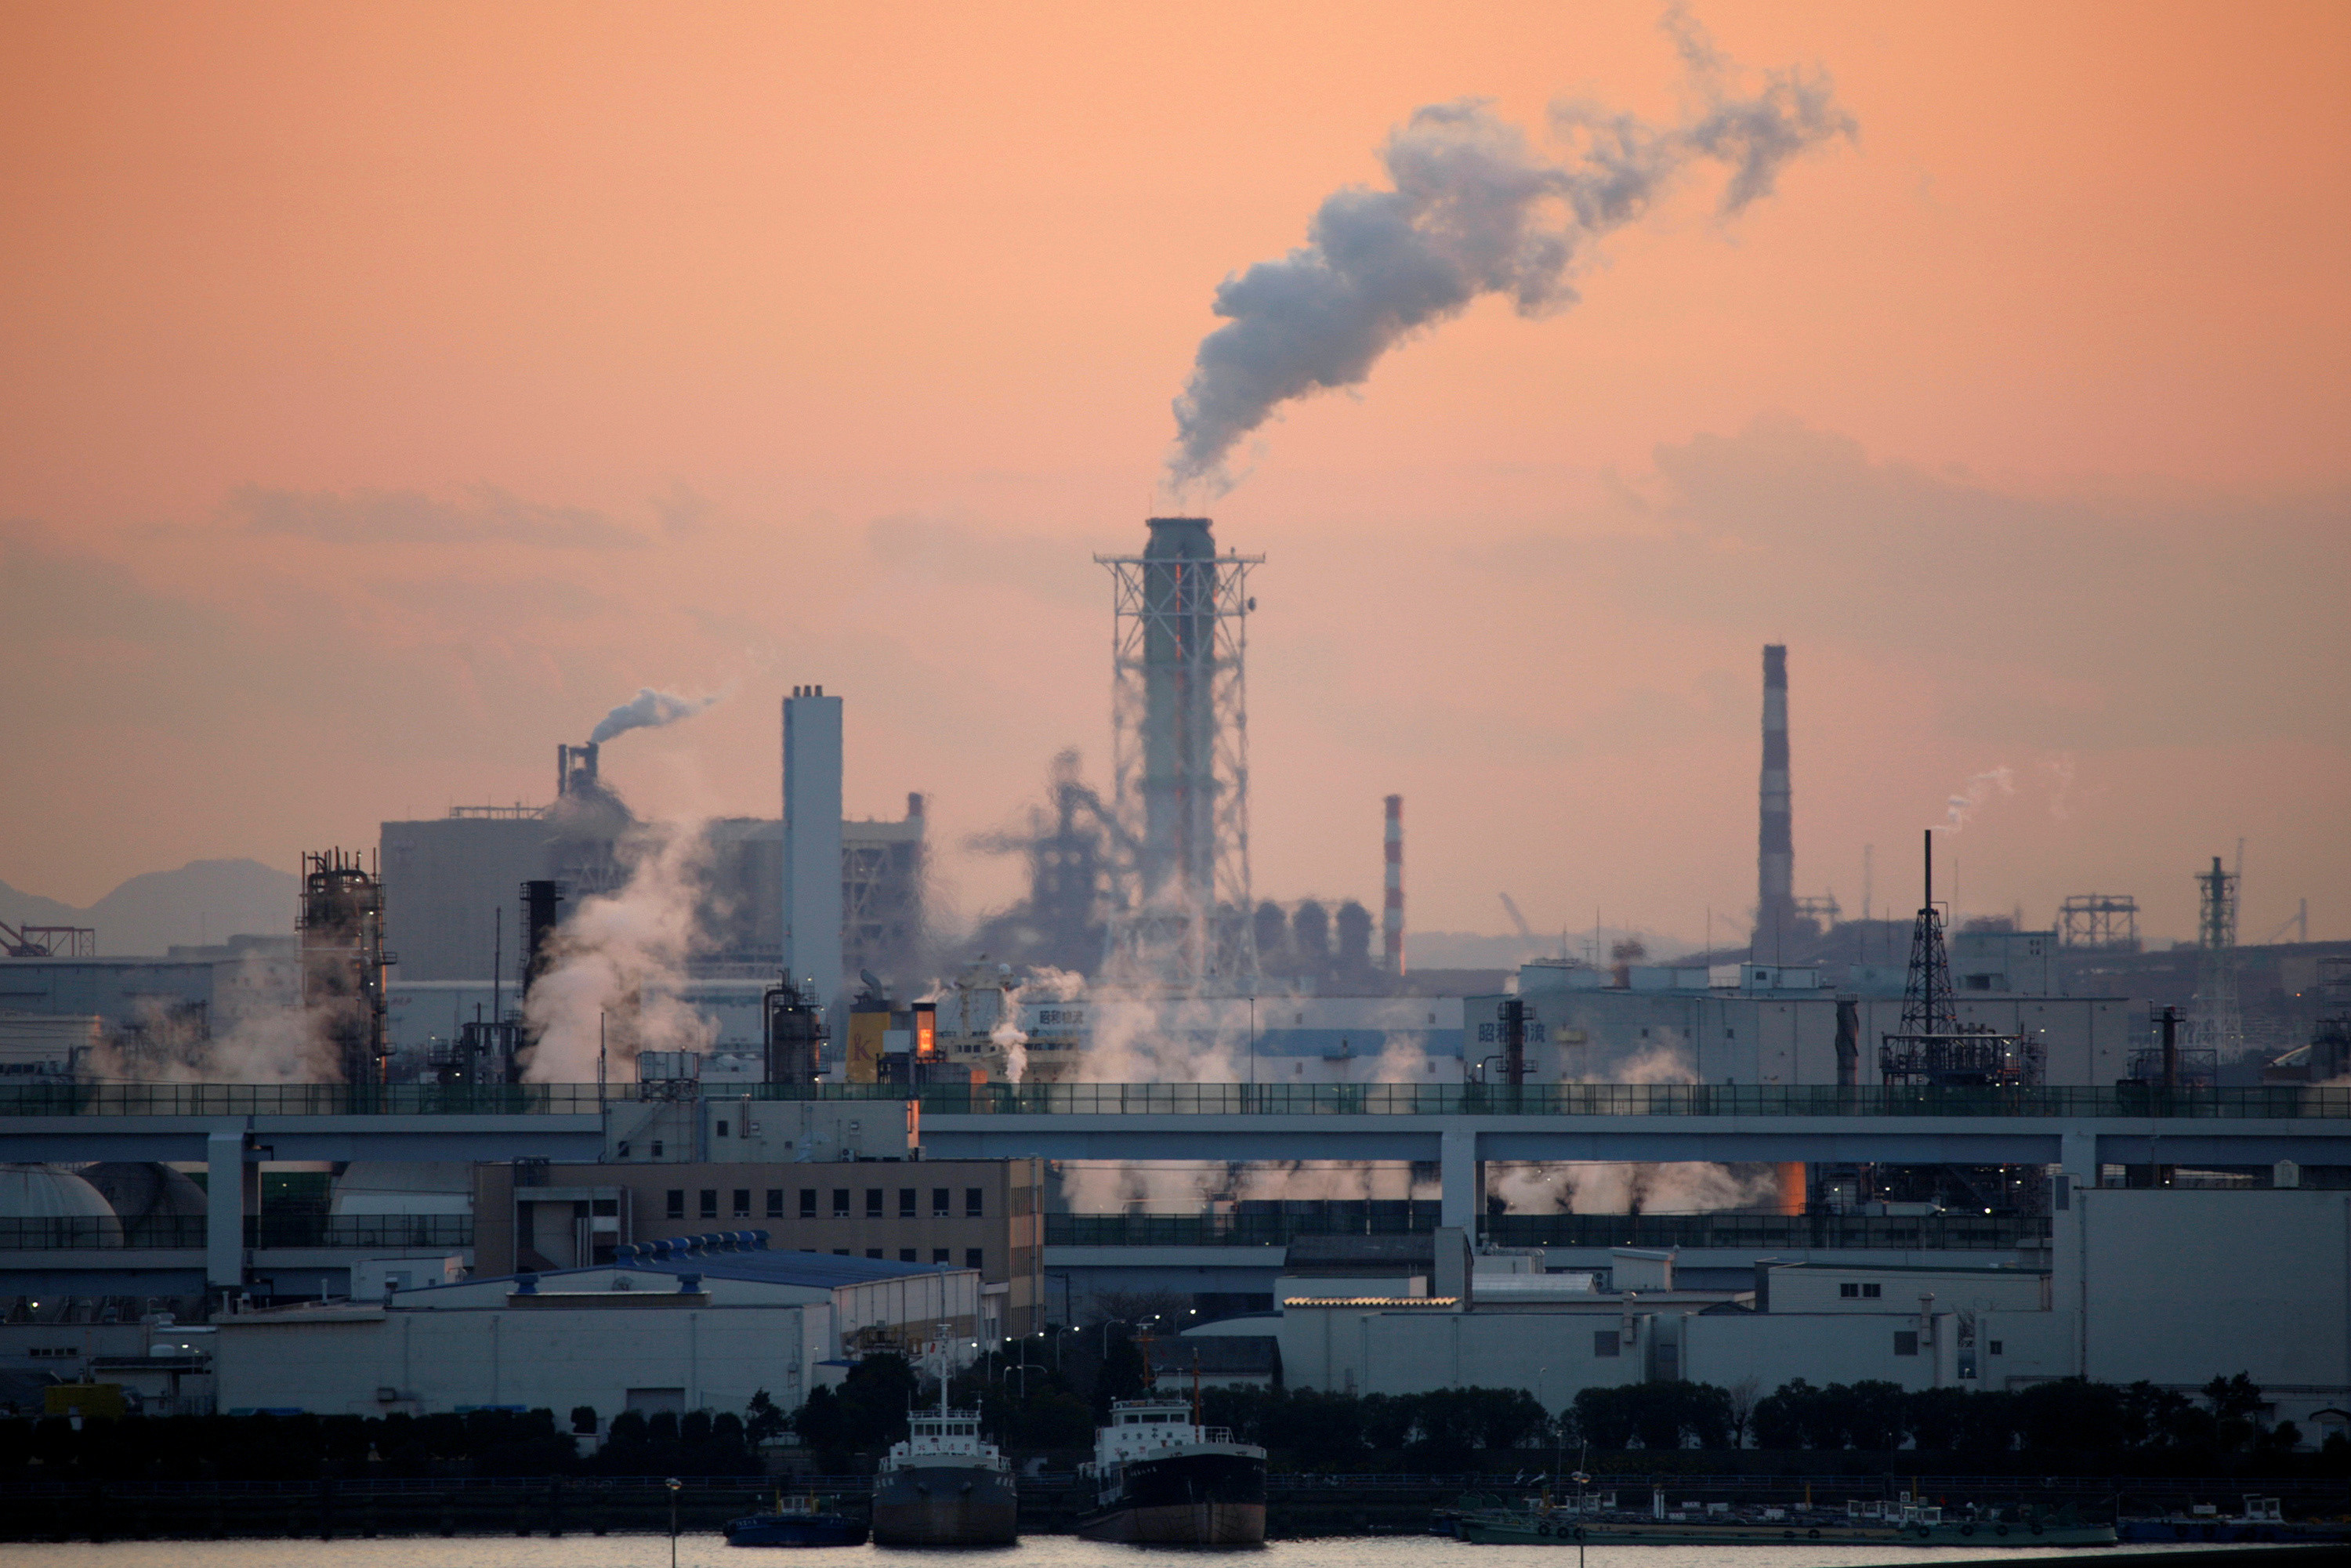 Factories are seen near Tokyo. The coronavirus pandemic may have caused structural changes in Japan's economy, requiring the Bank of Japan to tap more deeply into big data in making policy decisions, its top economist said. Non-traditional data, such as credit card spending, smartphone usage and even air pollution levels can capture real-time changes in economies. REUTERS/Stringer - RC2BUH9FAWCK